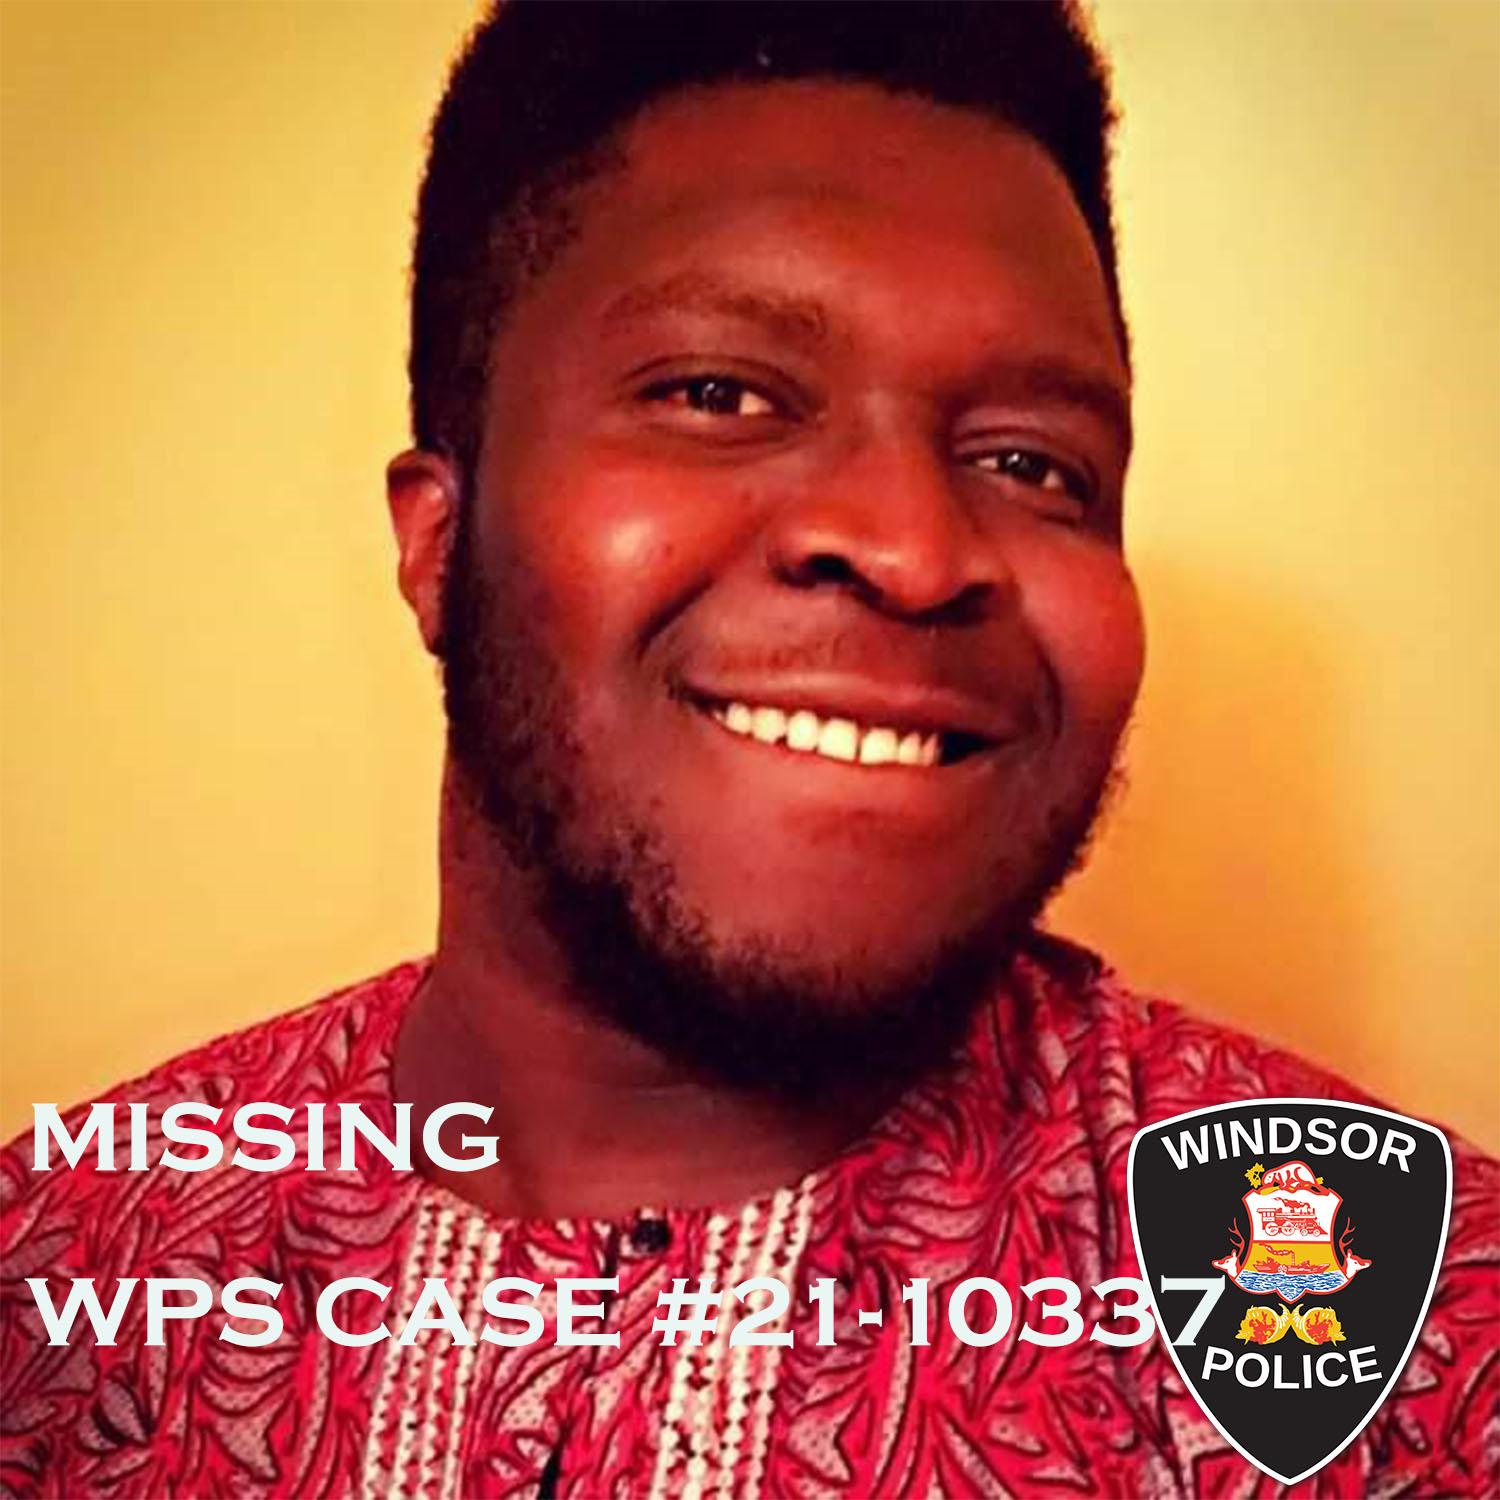 am800-news-oyebode-oyenuga-windsor-police-missing-person-march-5-2021